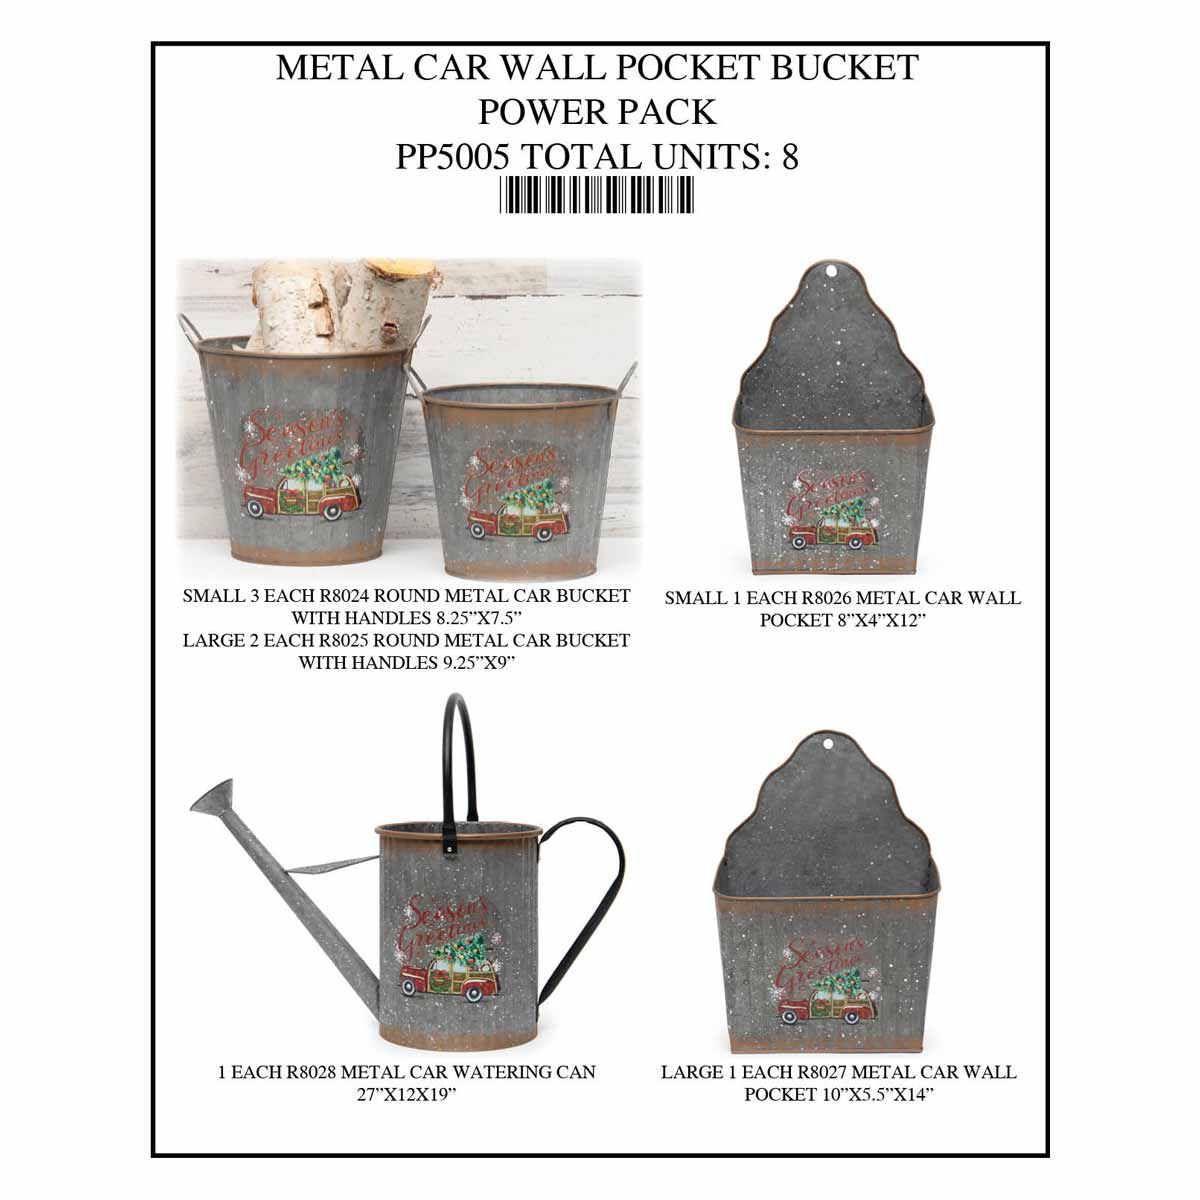 BUCKET WALL POCKET CAR POWER PACK 8 UNITS